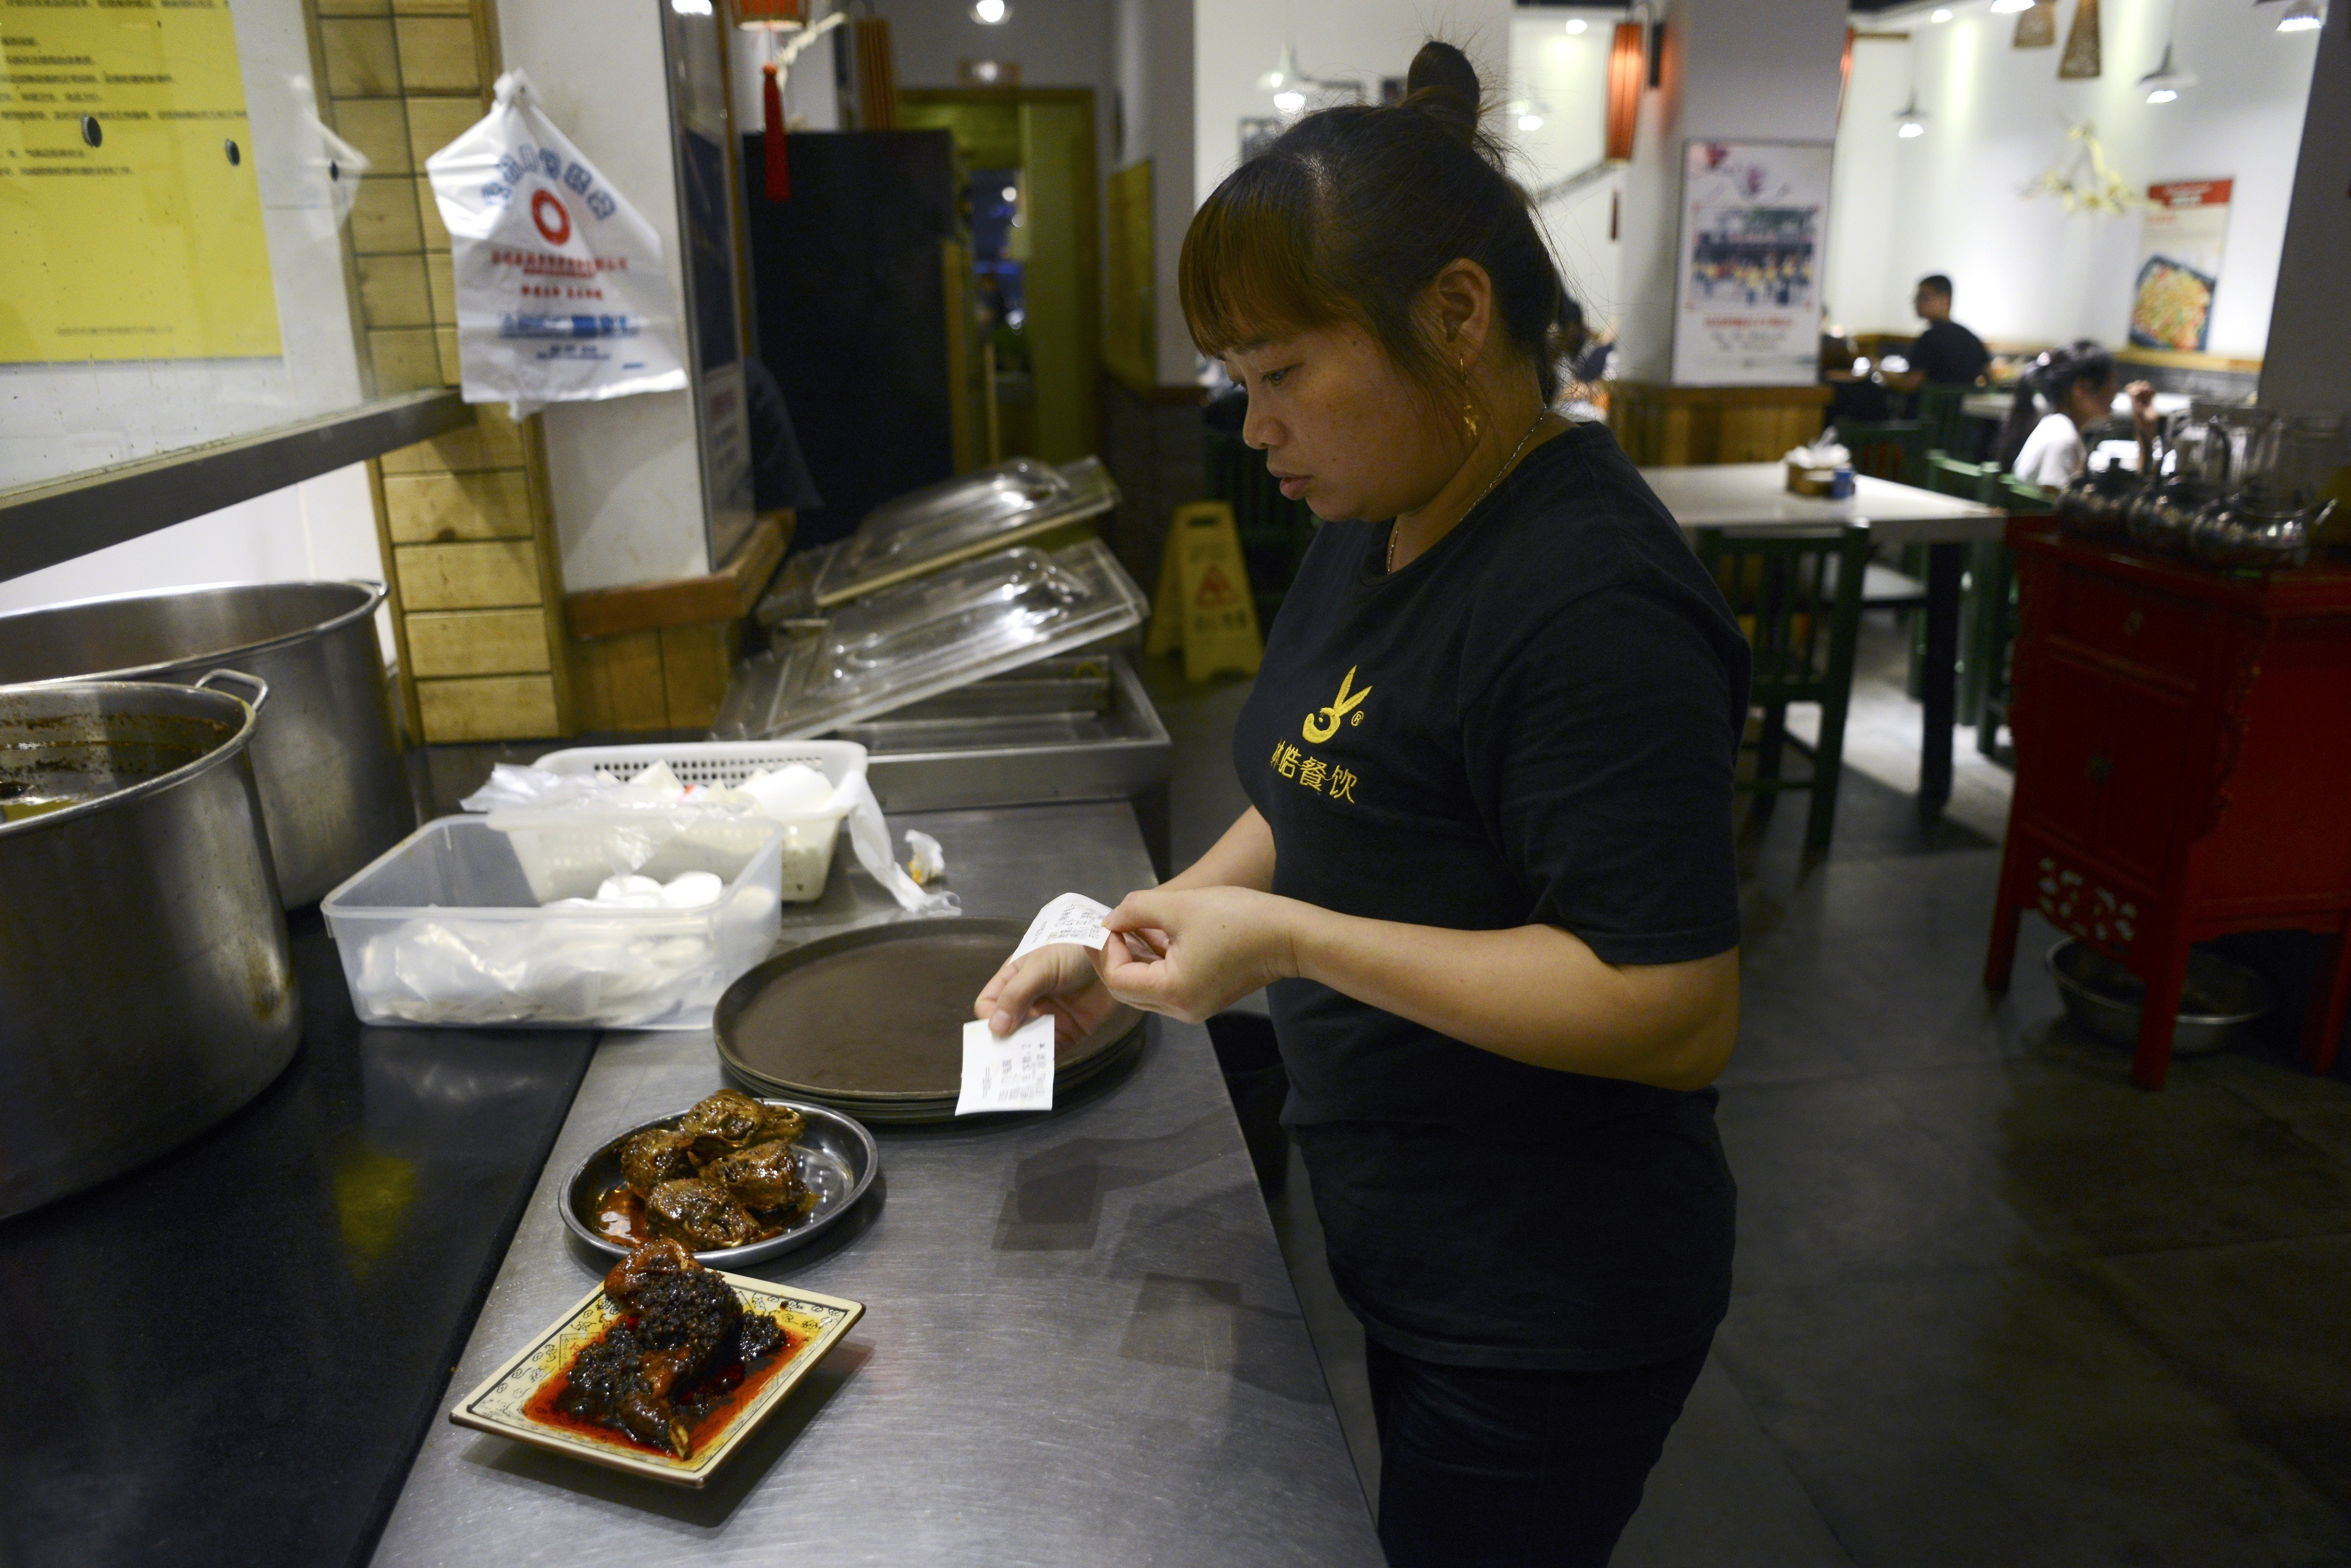 This picture taken on September 8, 2016 shows a waitress preparing a plate of rabbit's head for customers at a restaurant in Chengdu, in southwestern China's Sichuan province